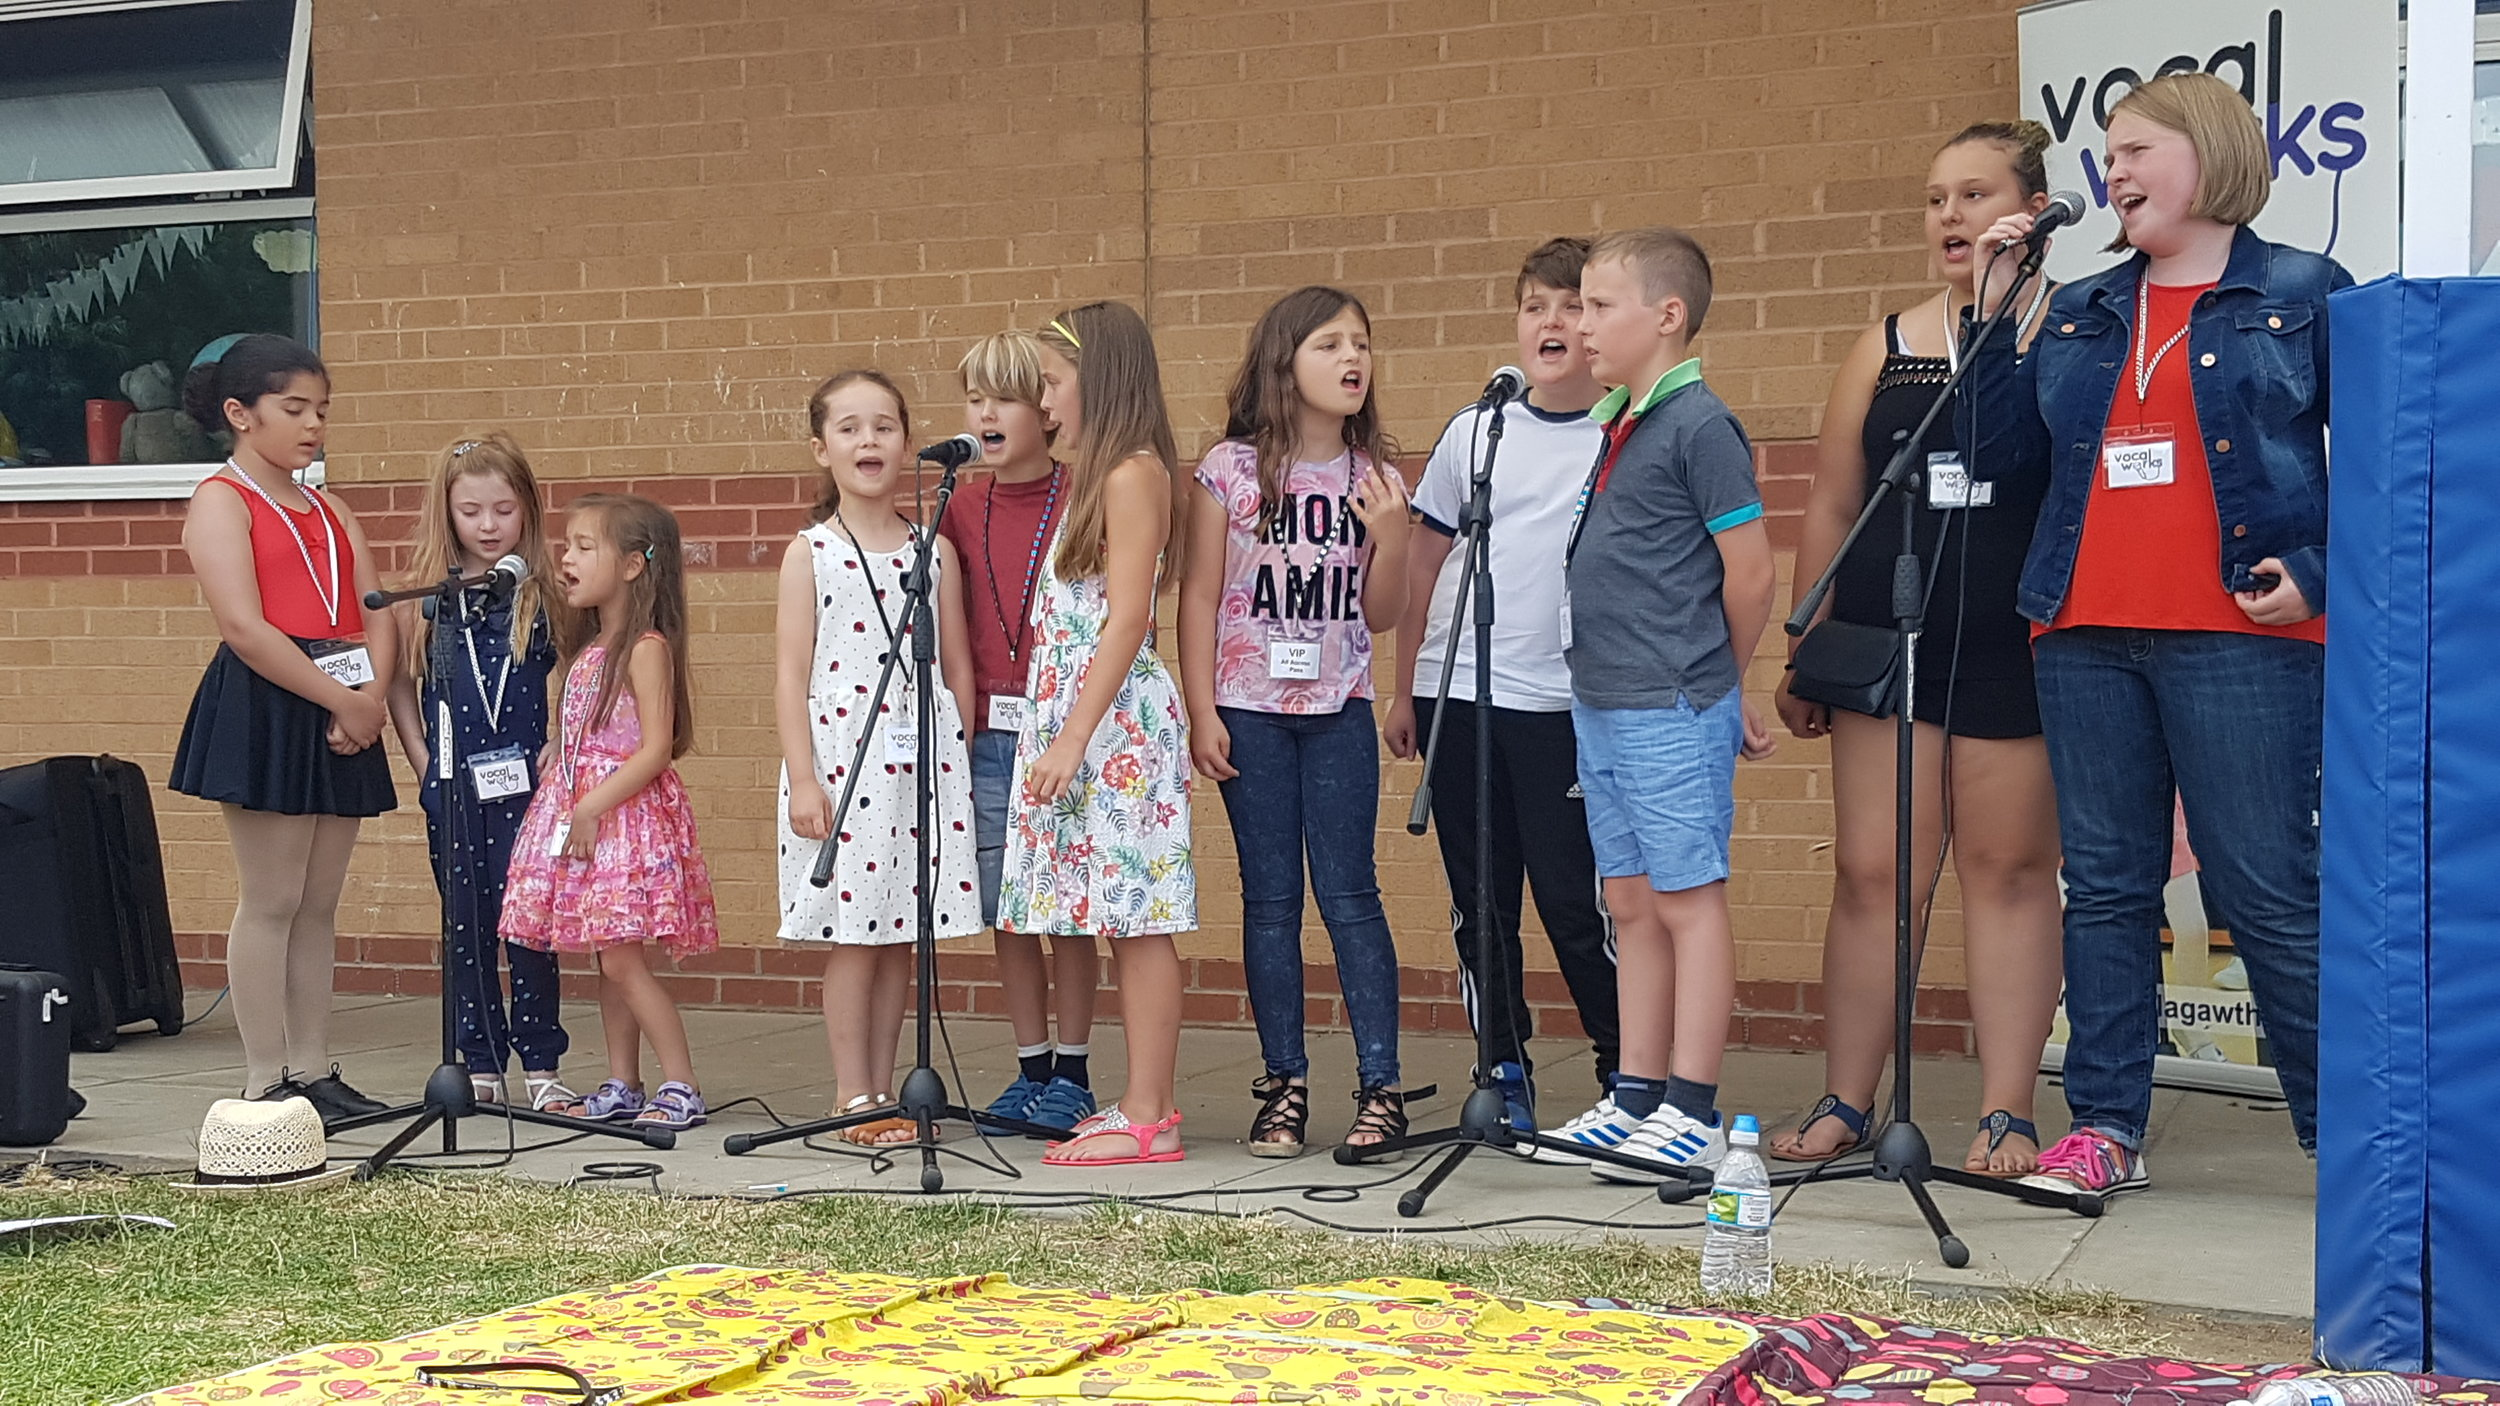 Performing at a local fete